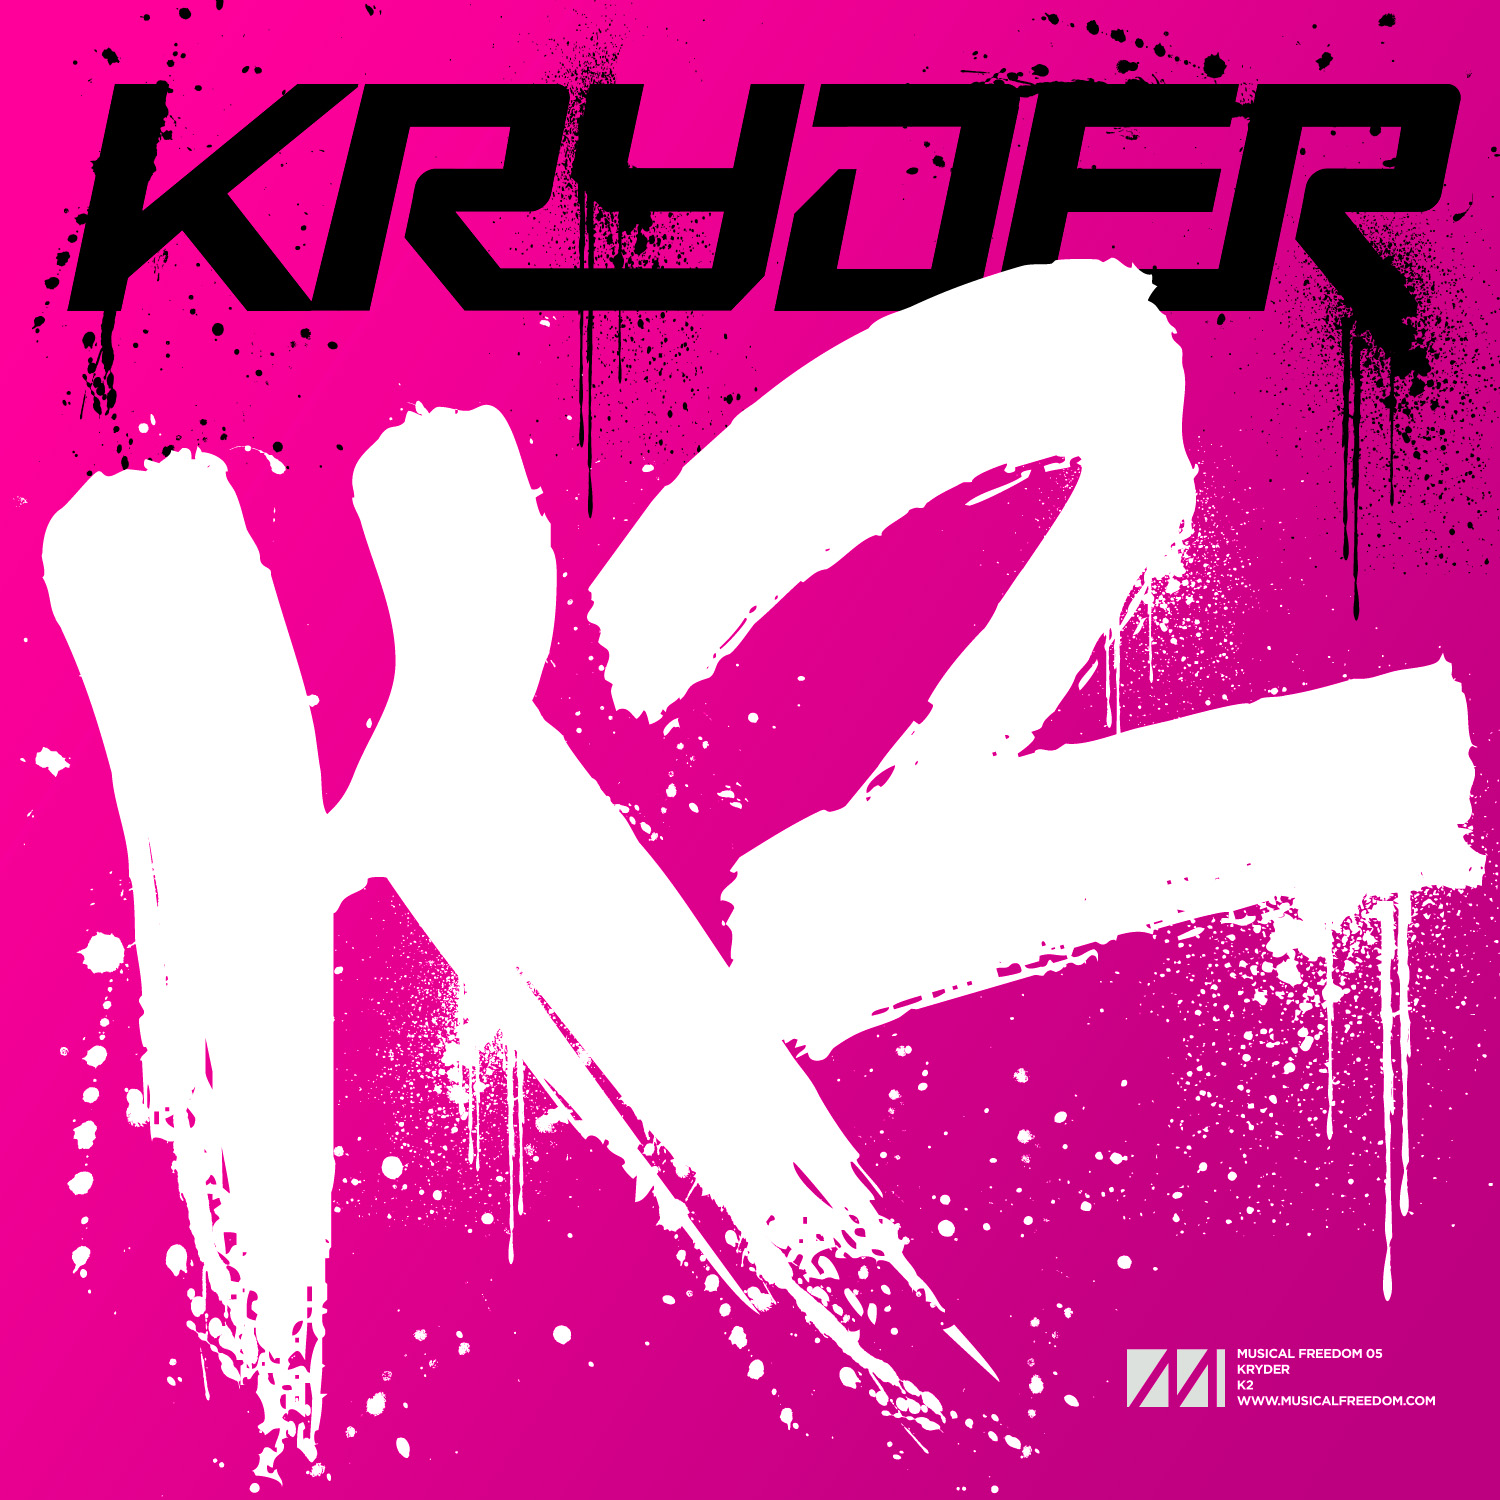 Kryder – K2 (Original Mix)